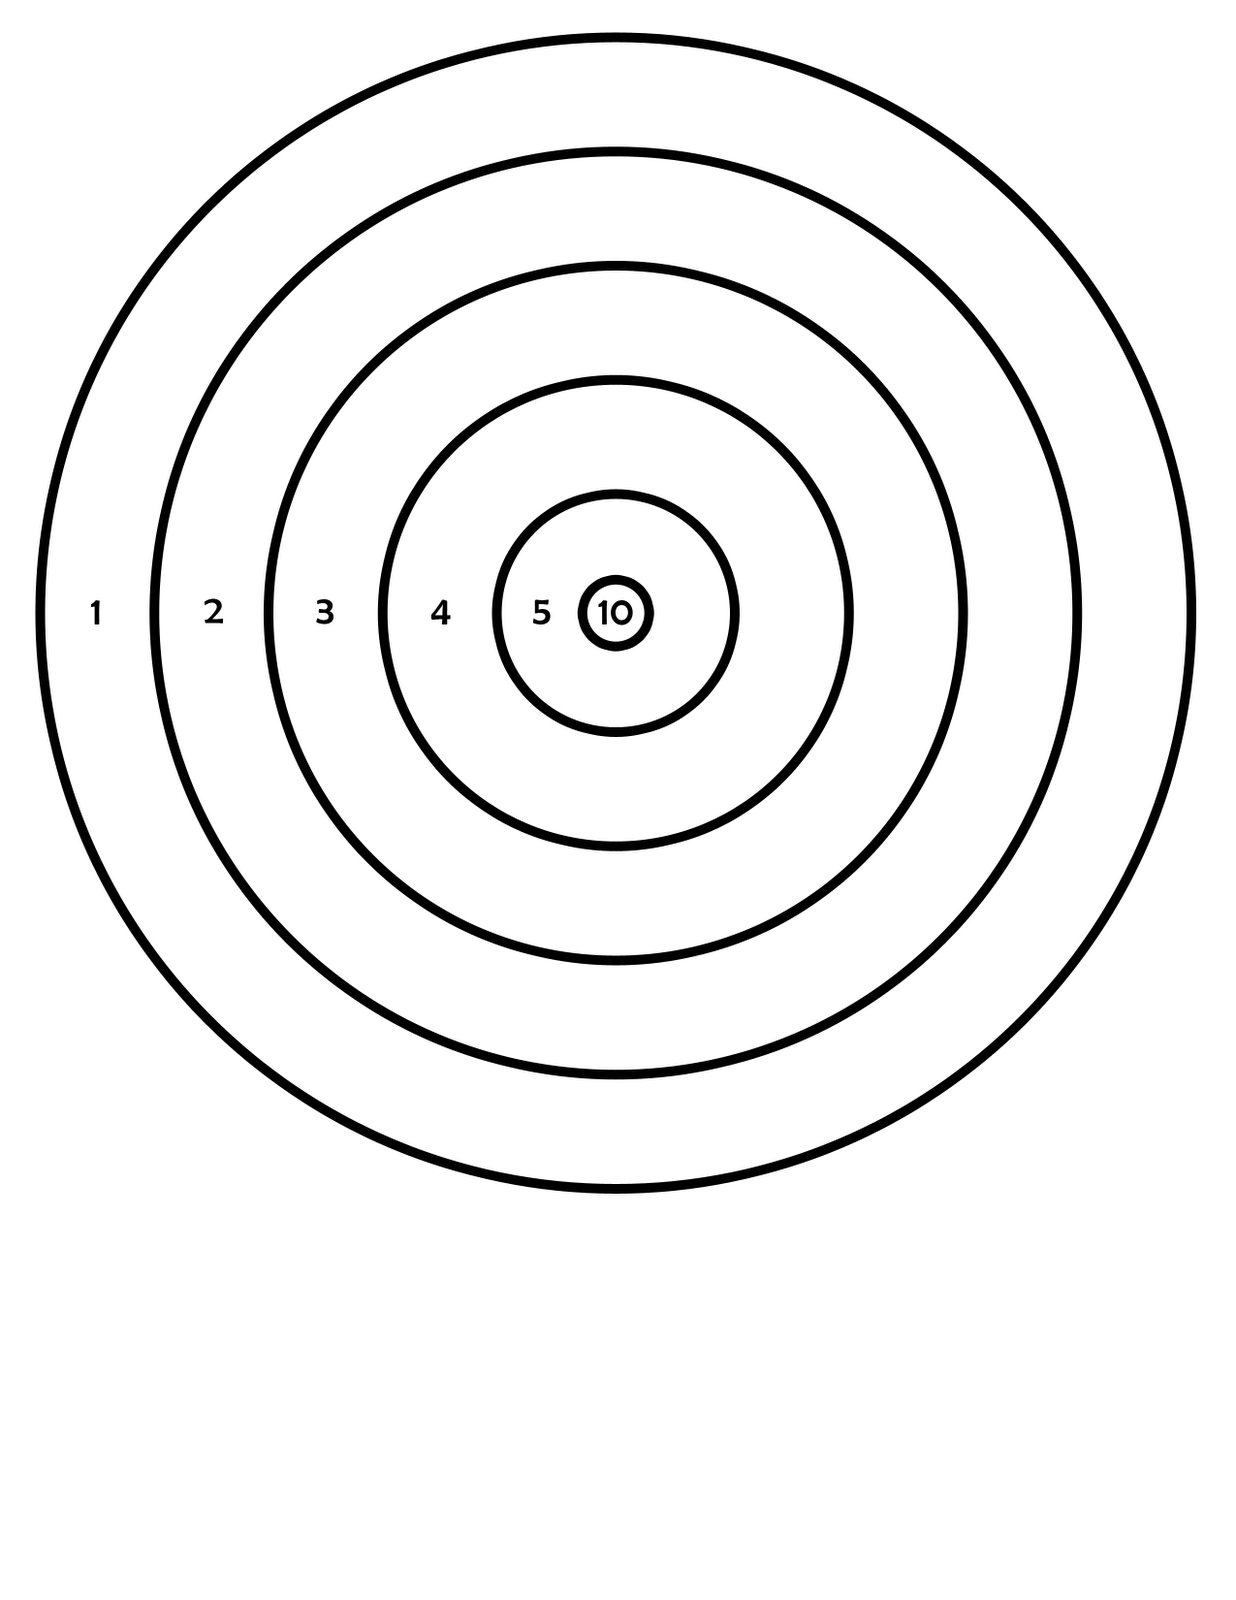 It's just an image of Influential Printable Pistol Targets